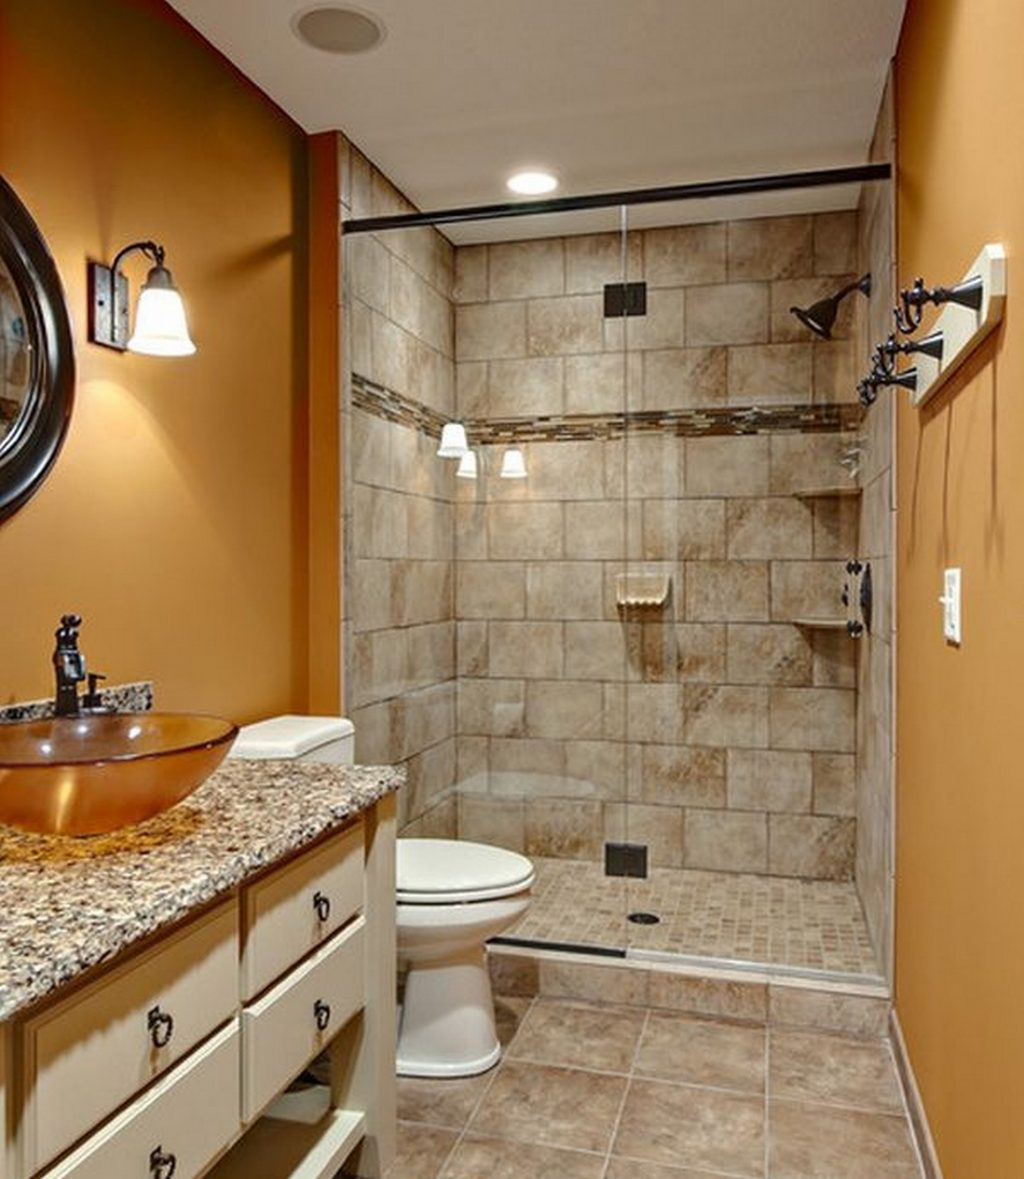 Medium Bathroom Designs Imagestc